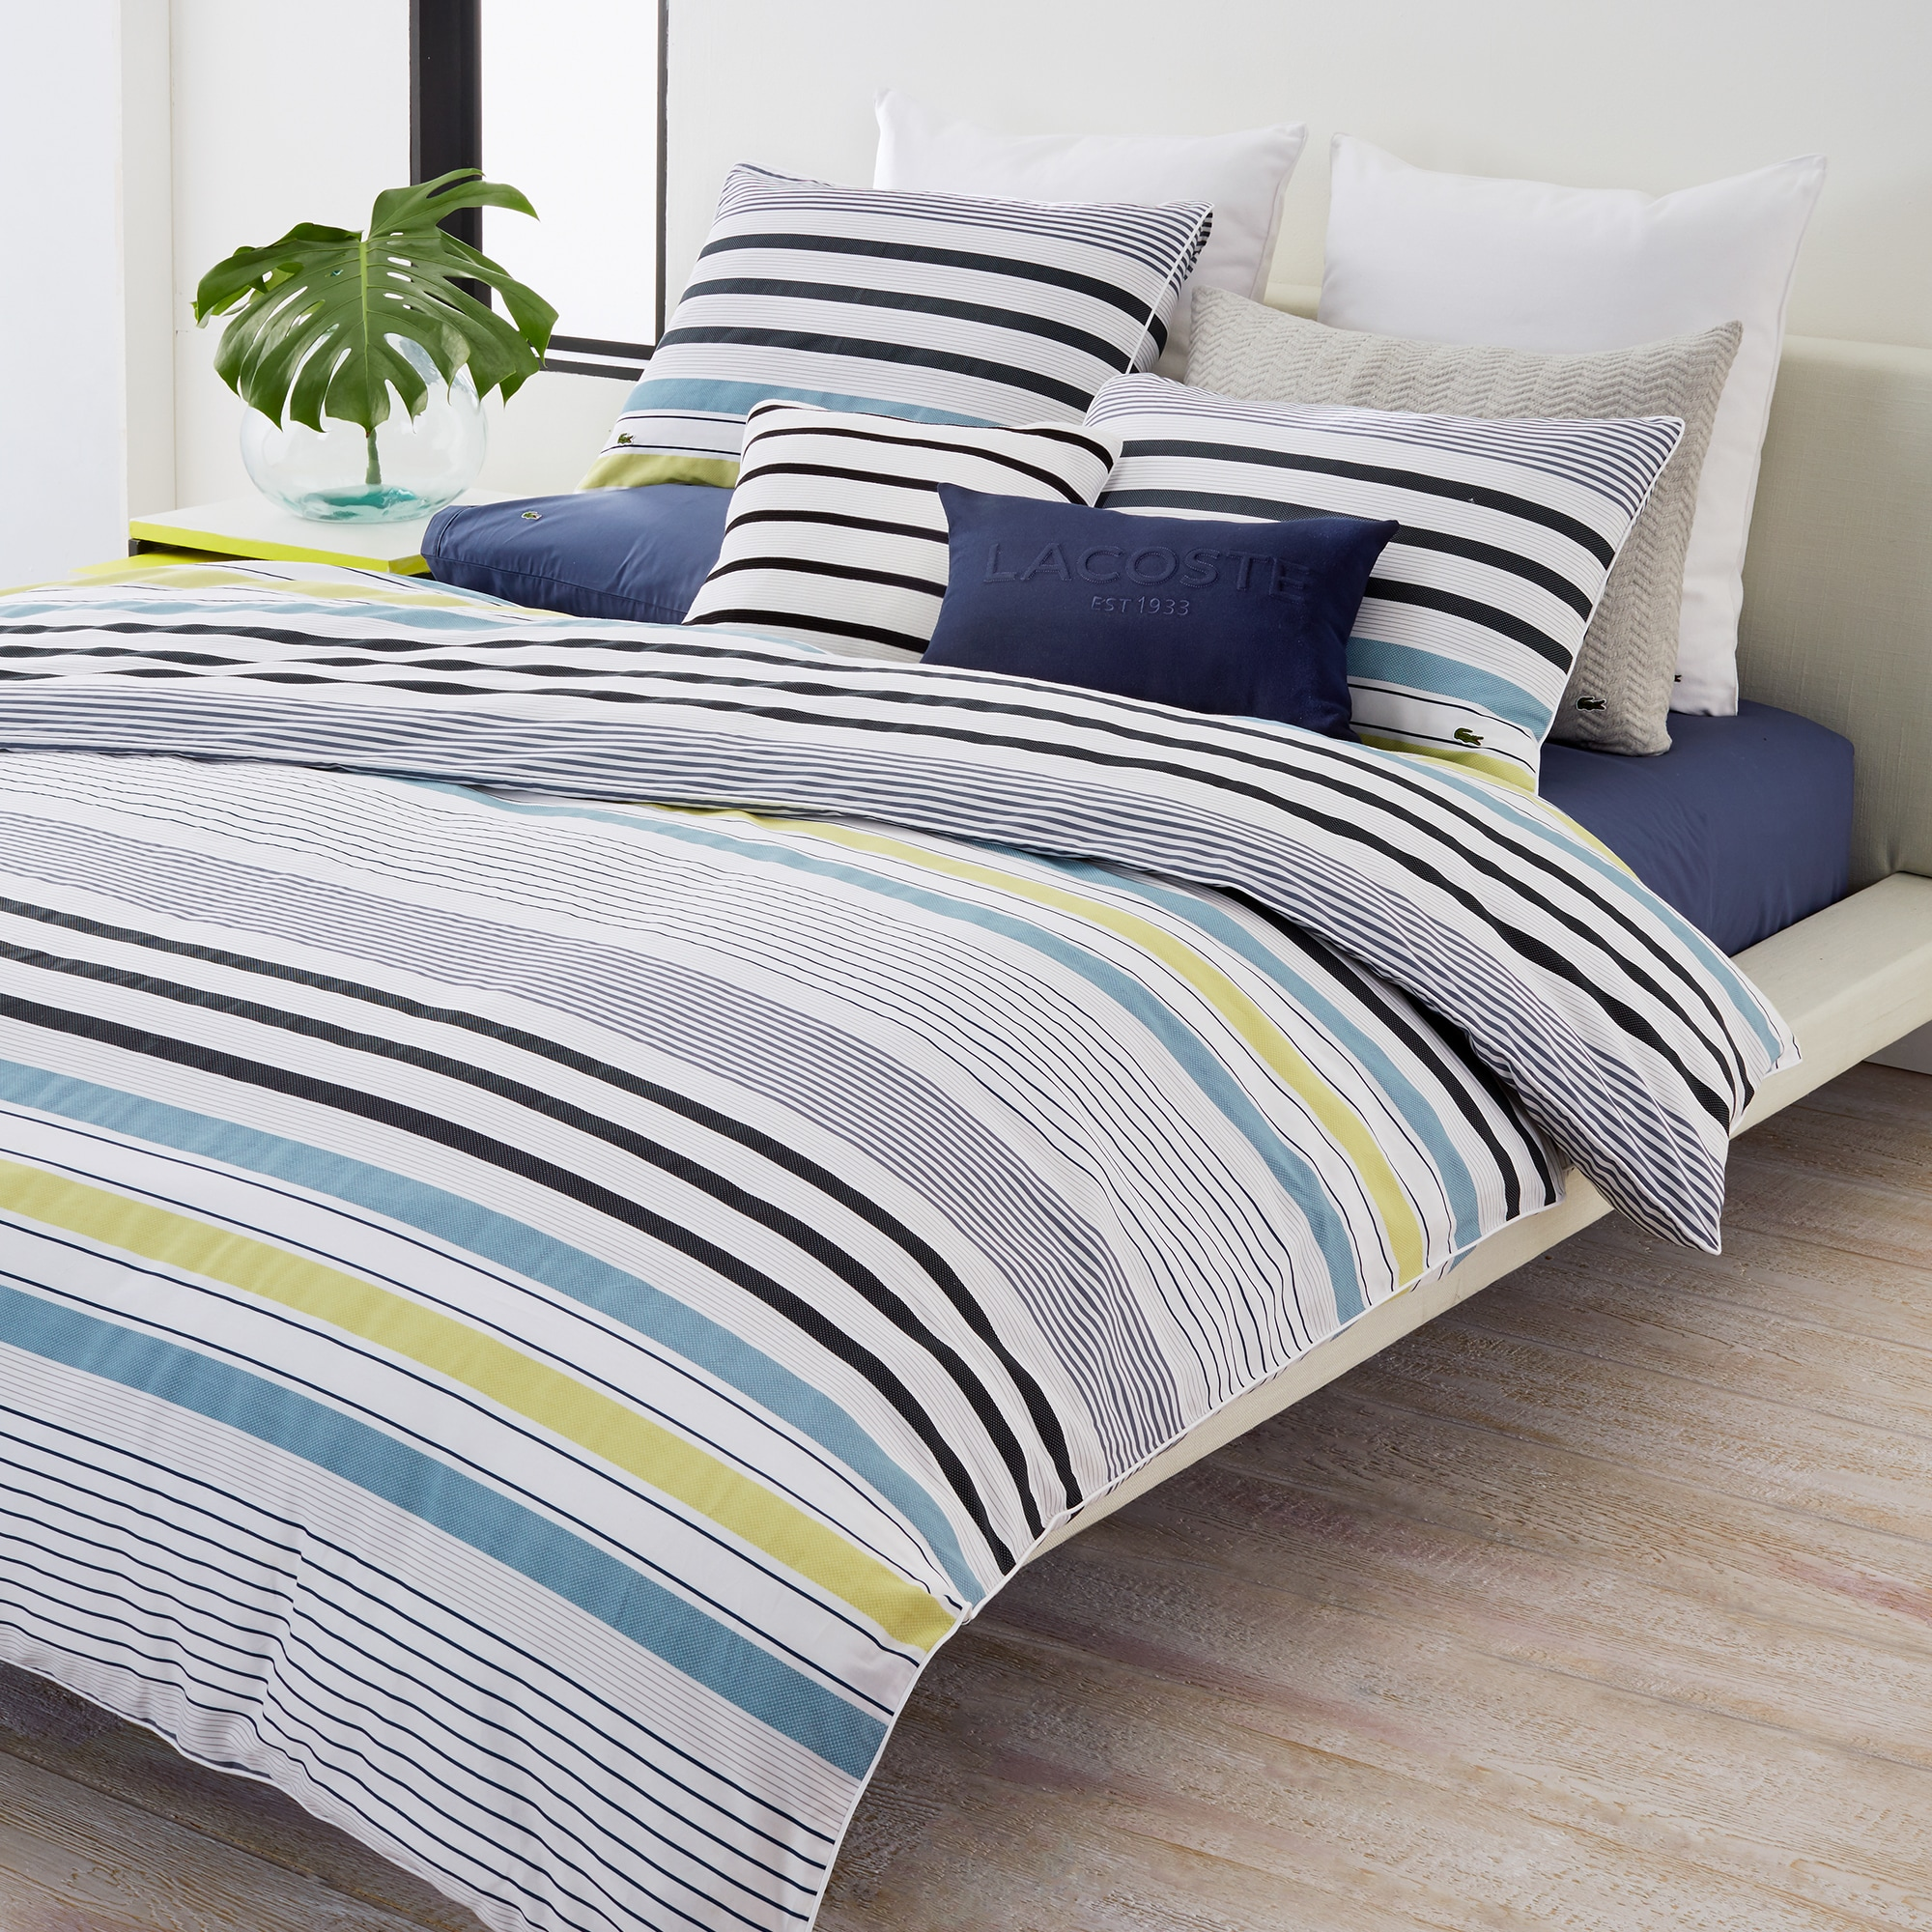 sheets bed from in lacoste quality aliexpress com shipping cotton sets cover free bedding promotion home pillowcase garden flat sale on set group high duvet item alibaba